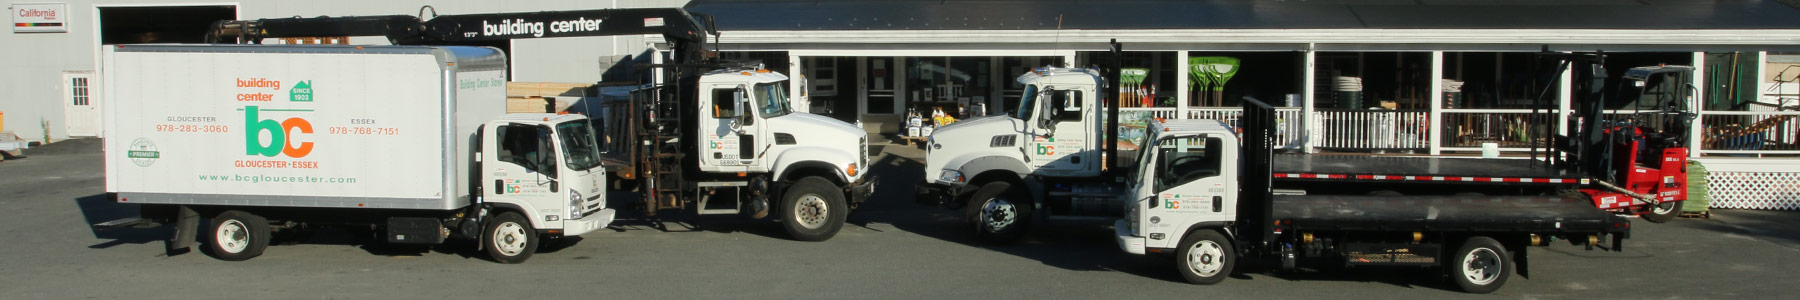 Building Center Delivery Trucks